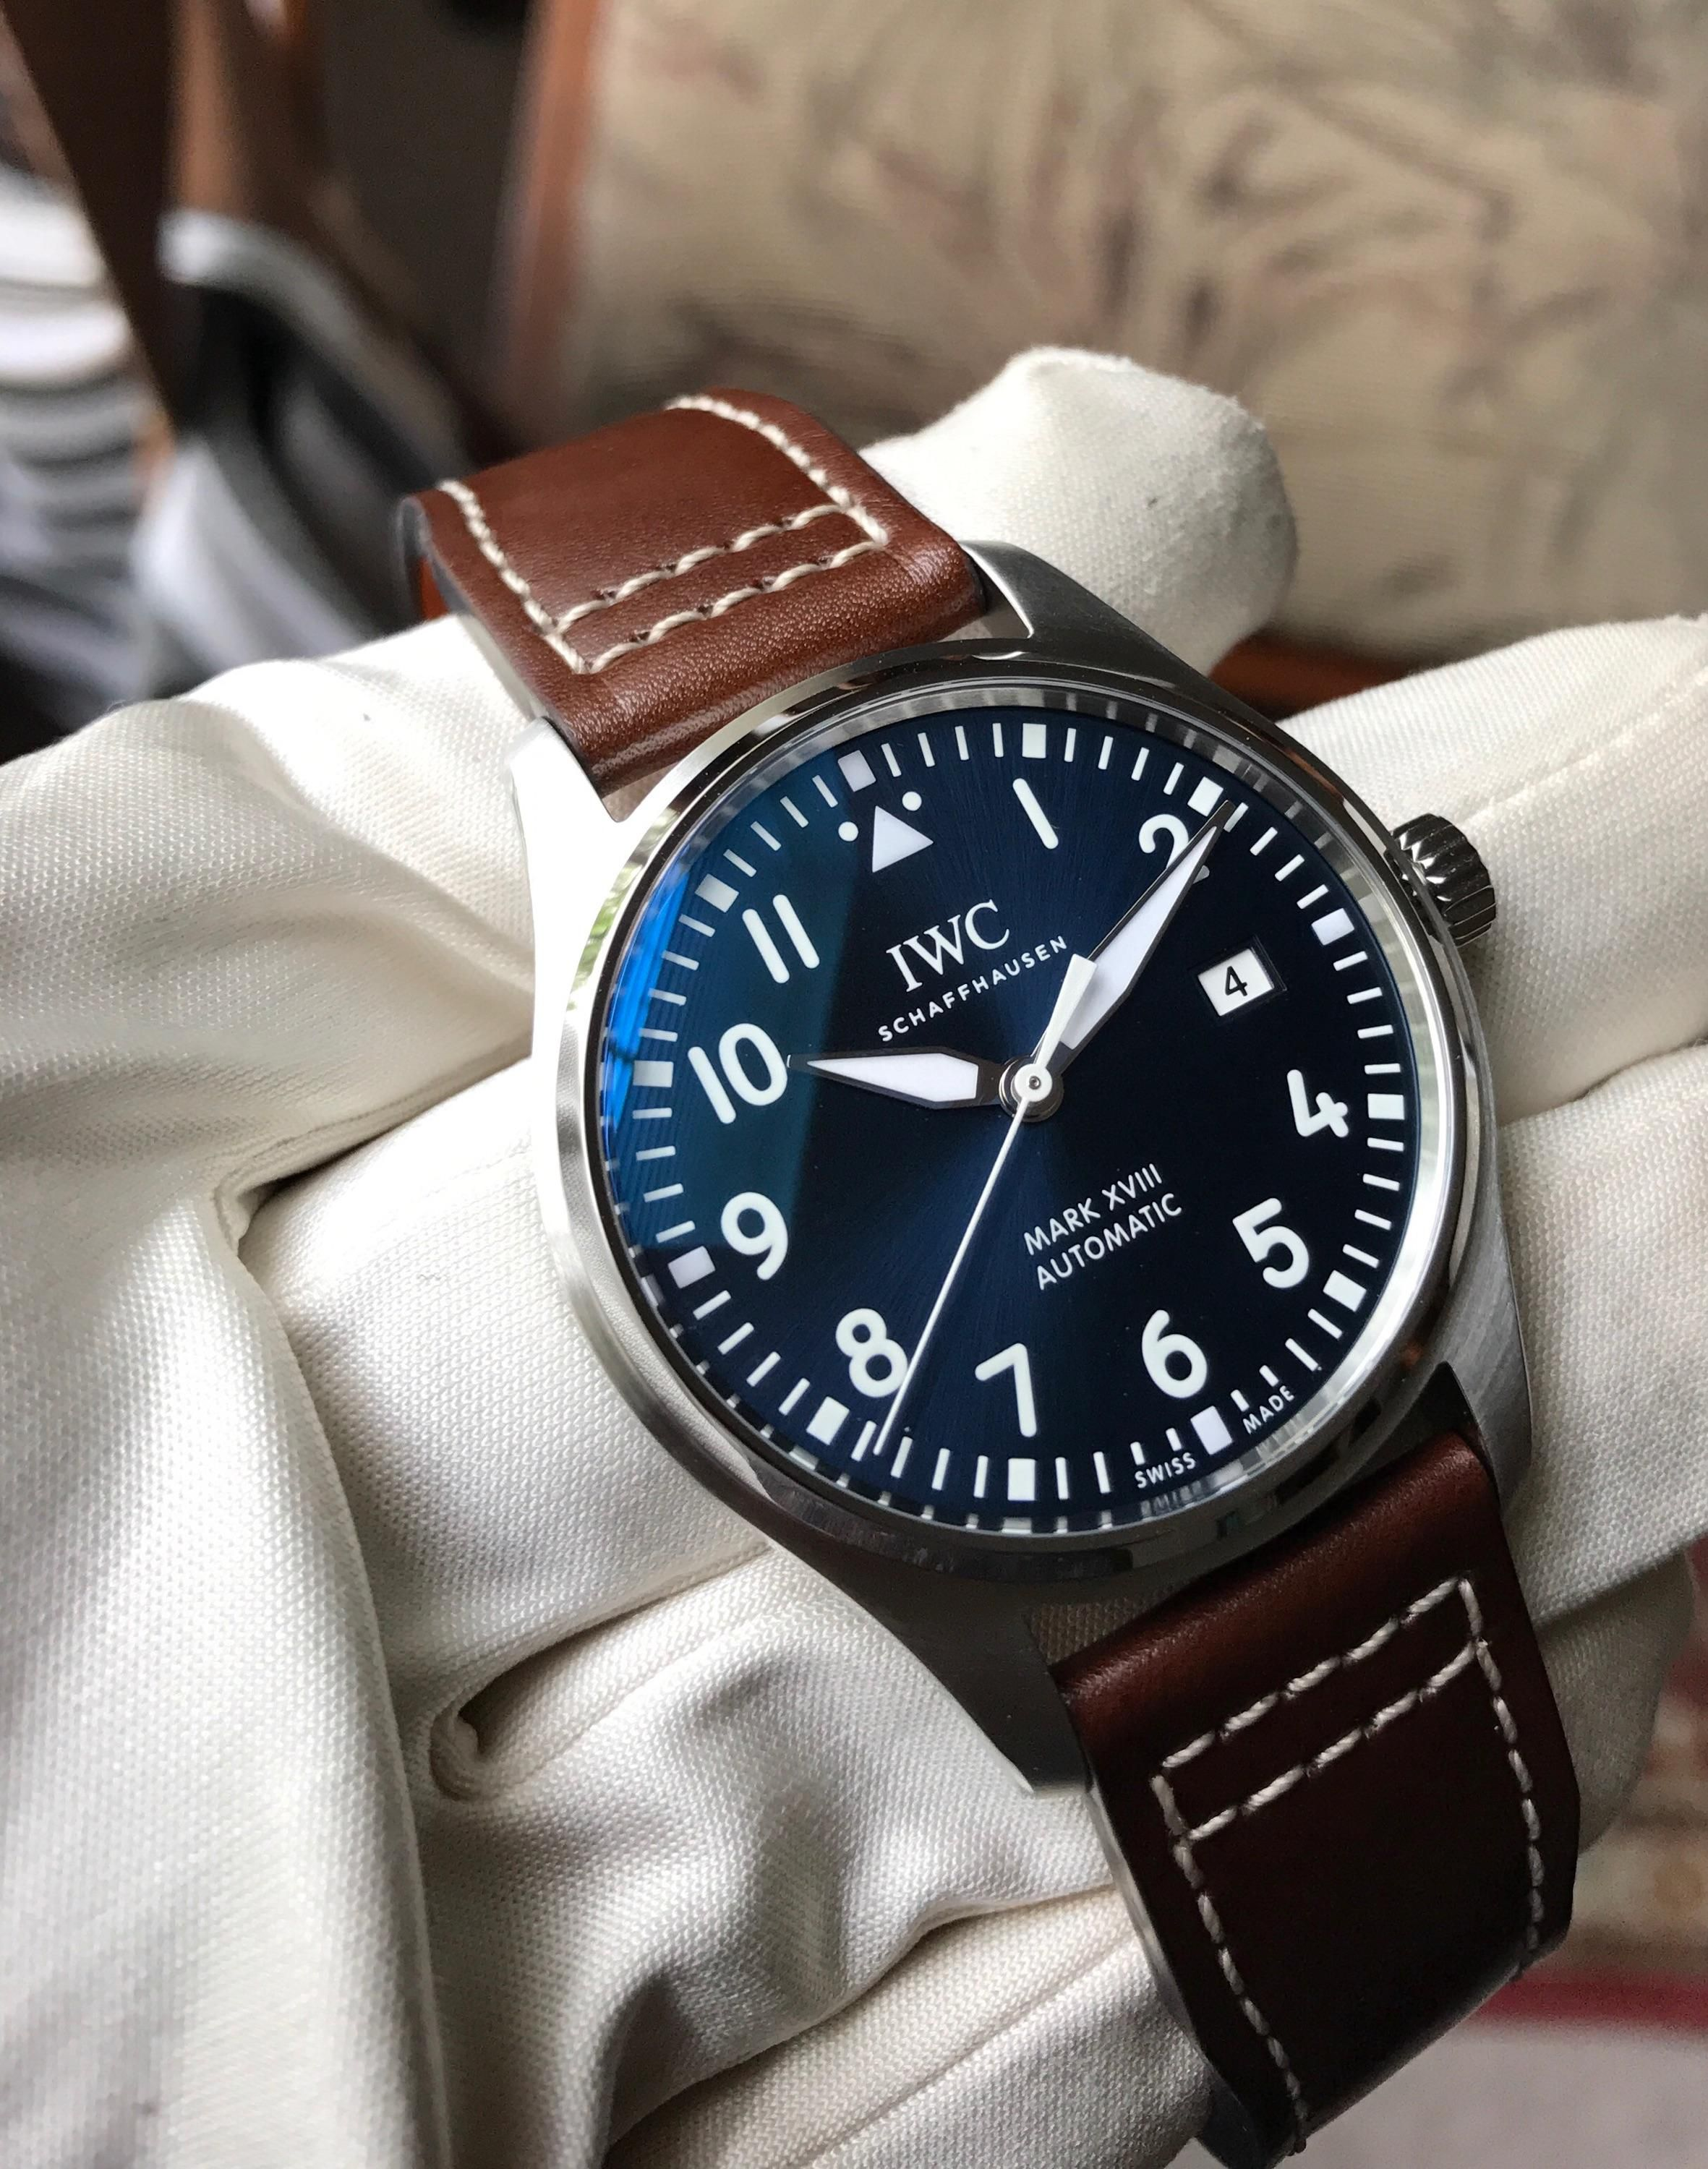 aviation aviator rug dlc army pol rugged company for rubber lso shop watches coated naval de and watch